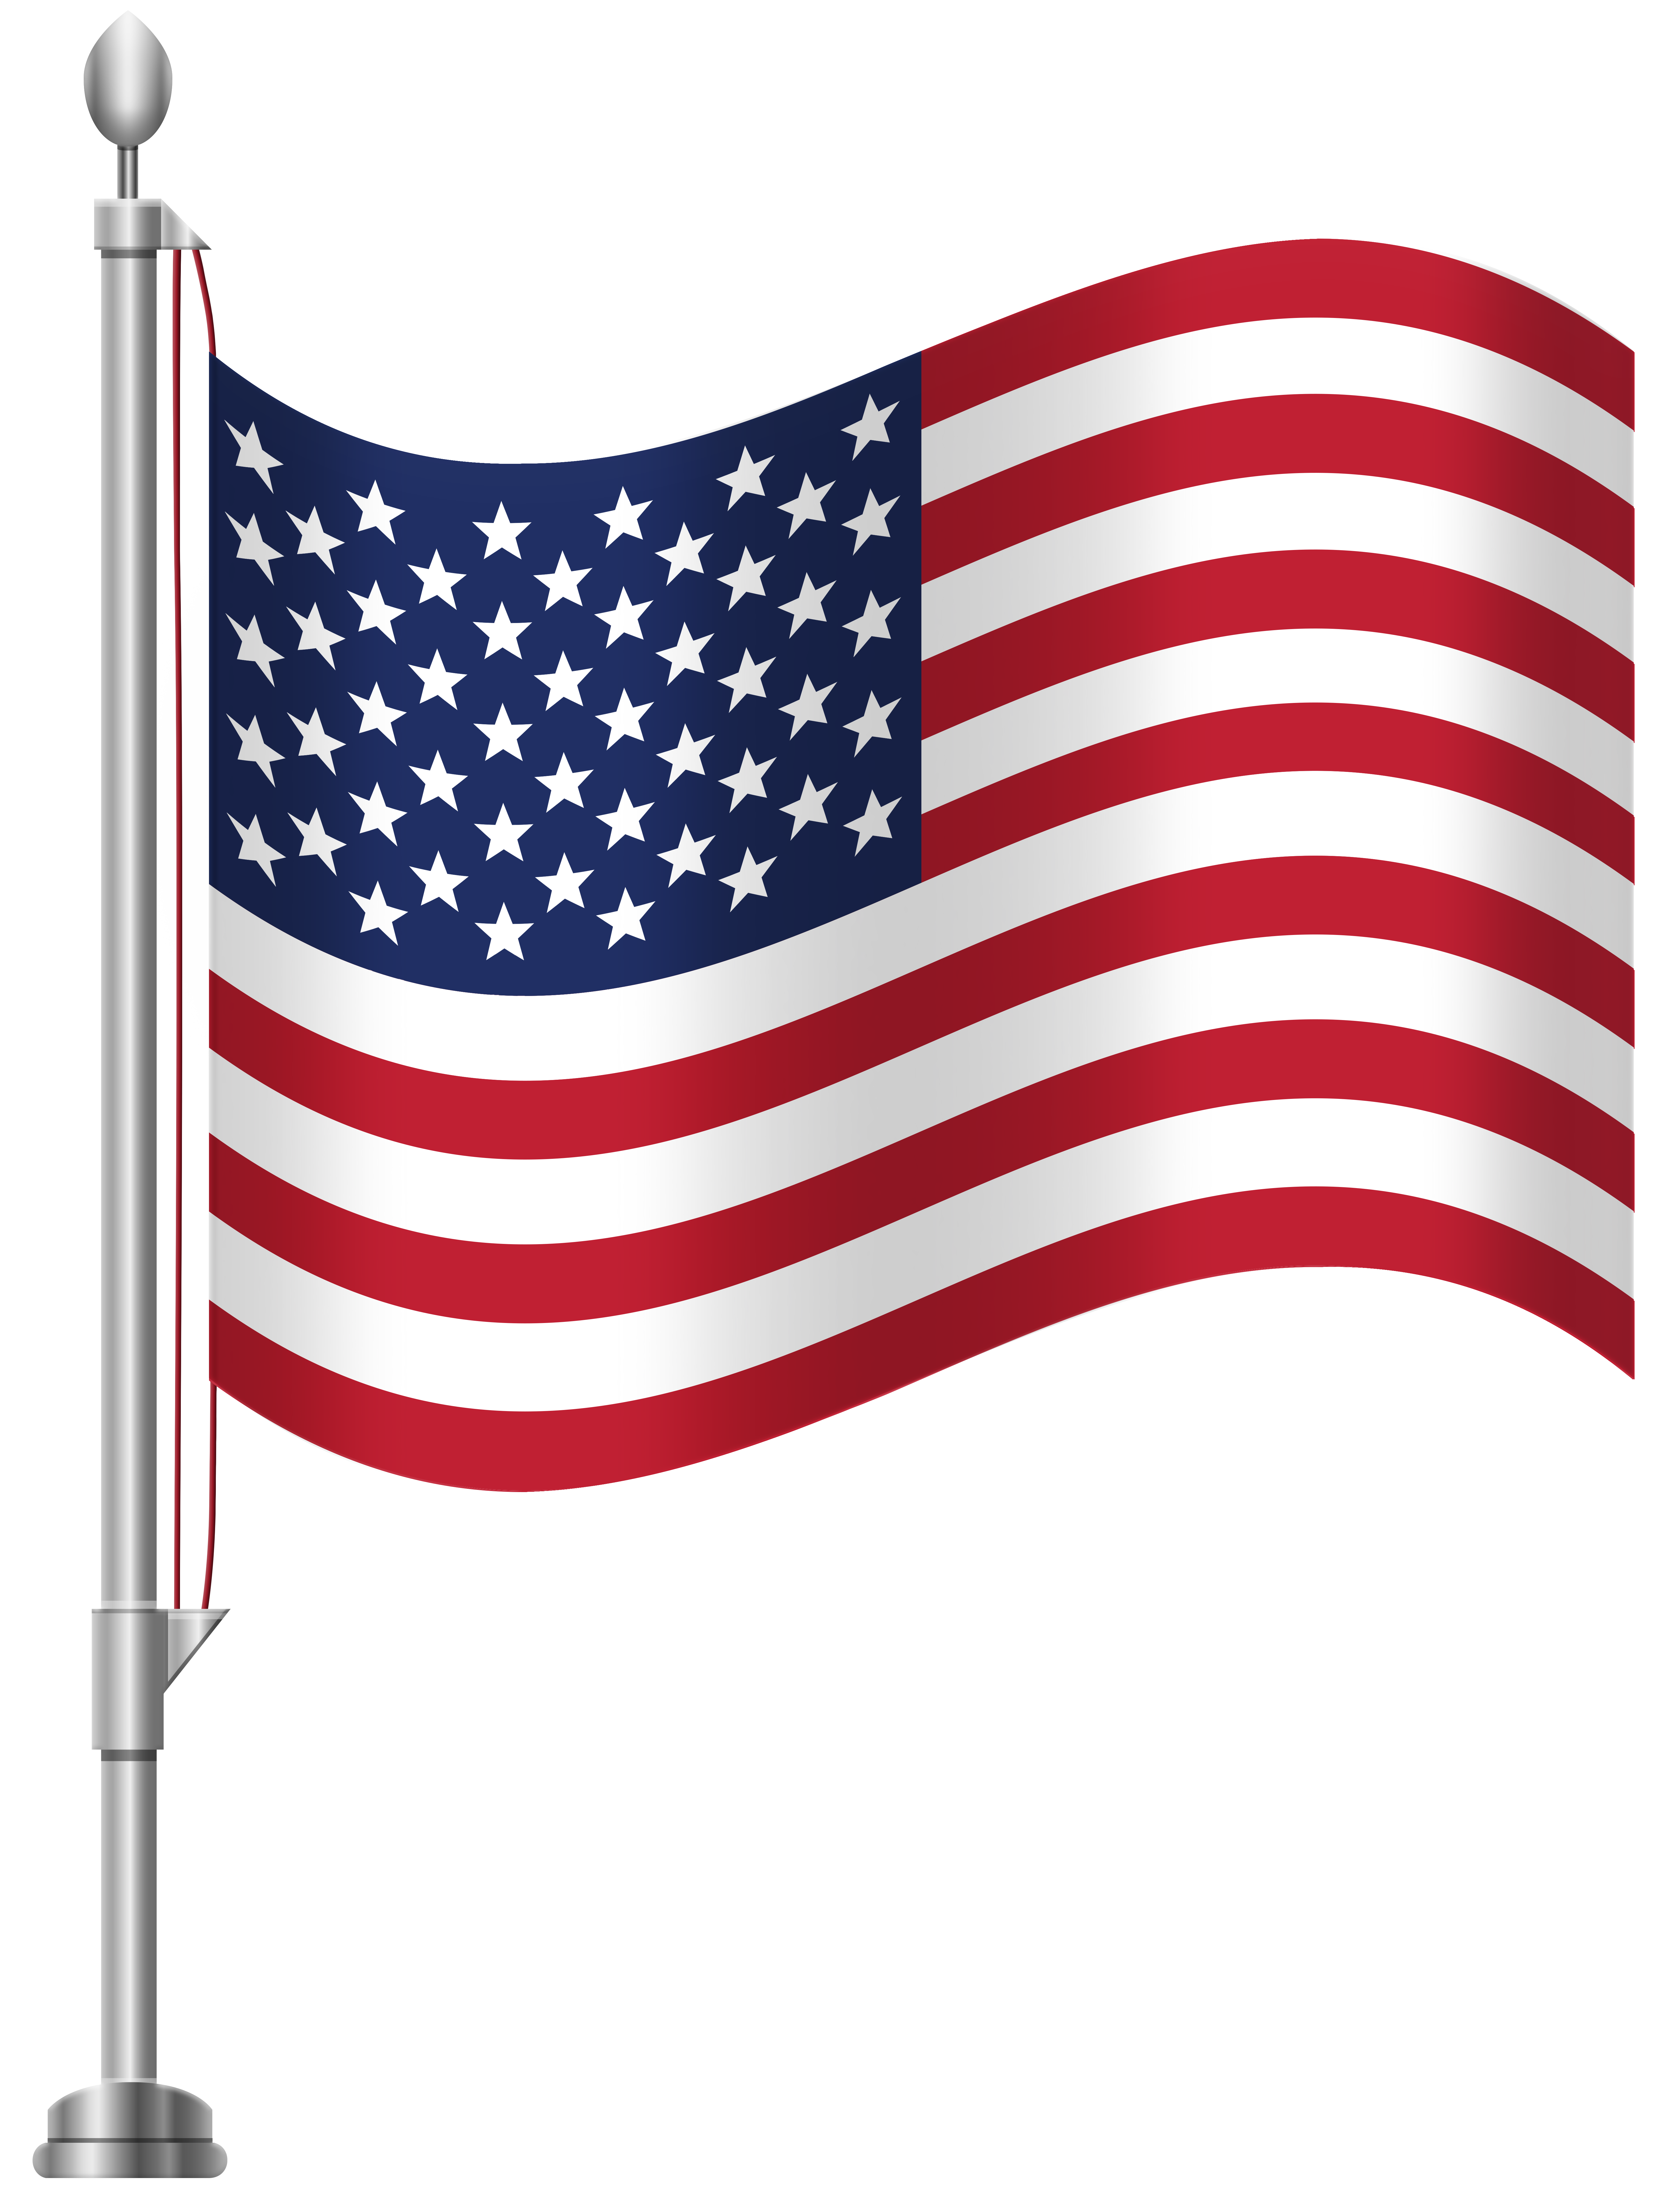 united states clipart high resolution